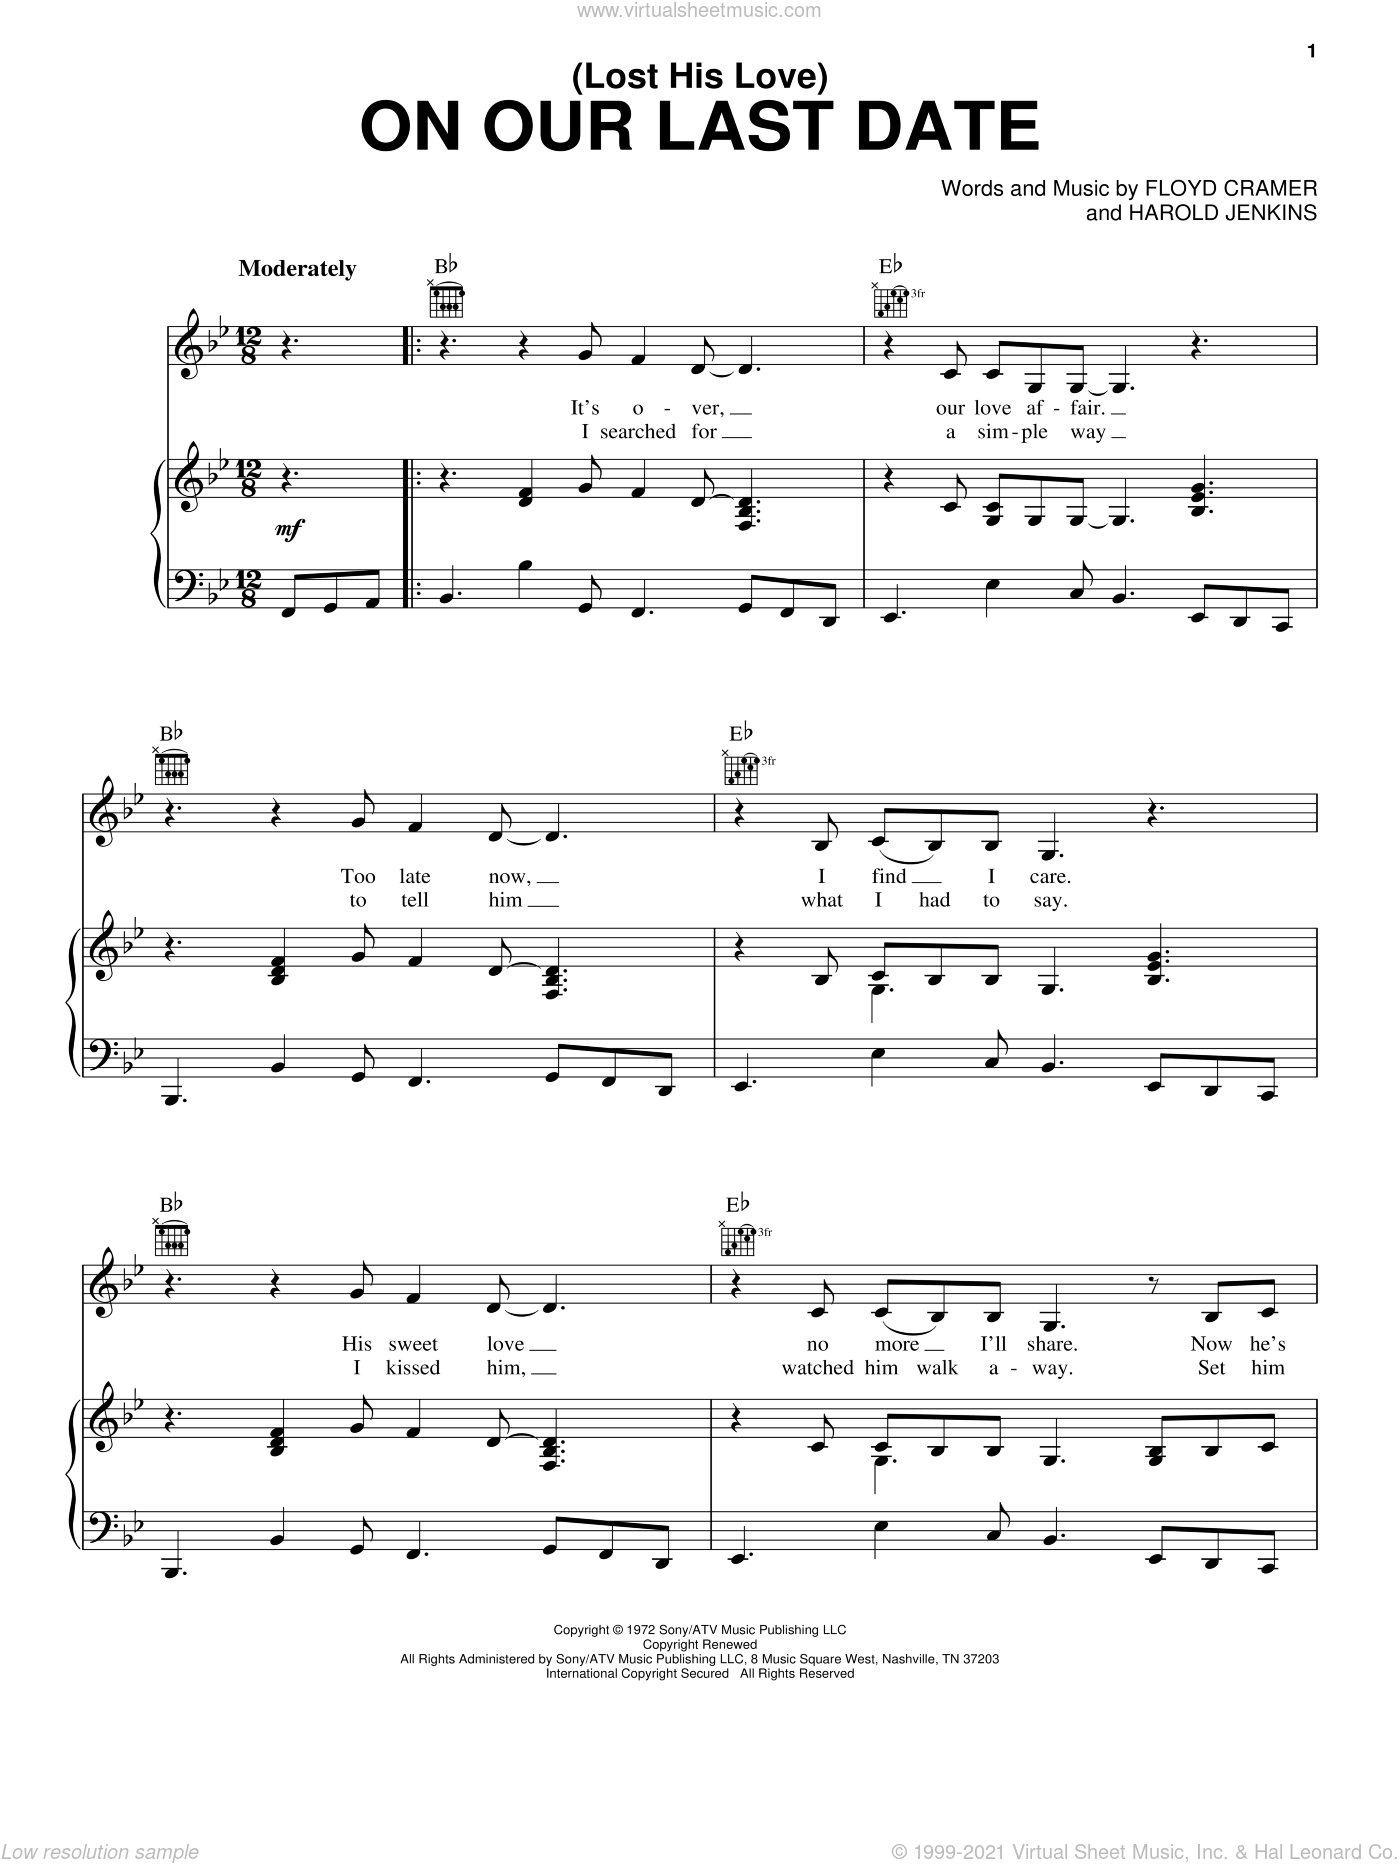 (Lost Her Love) On Our Last Date sheet music for voice, piano or guitar by Harold Jenkins